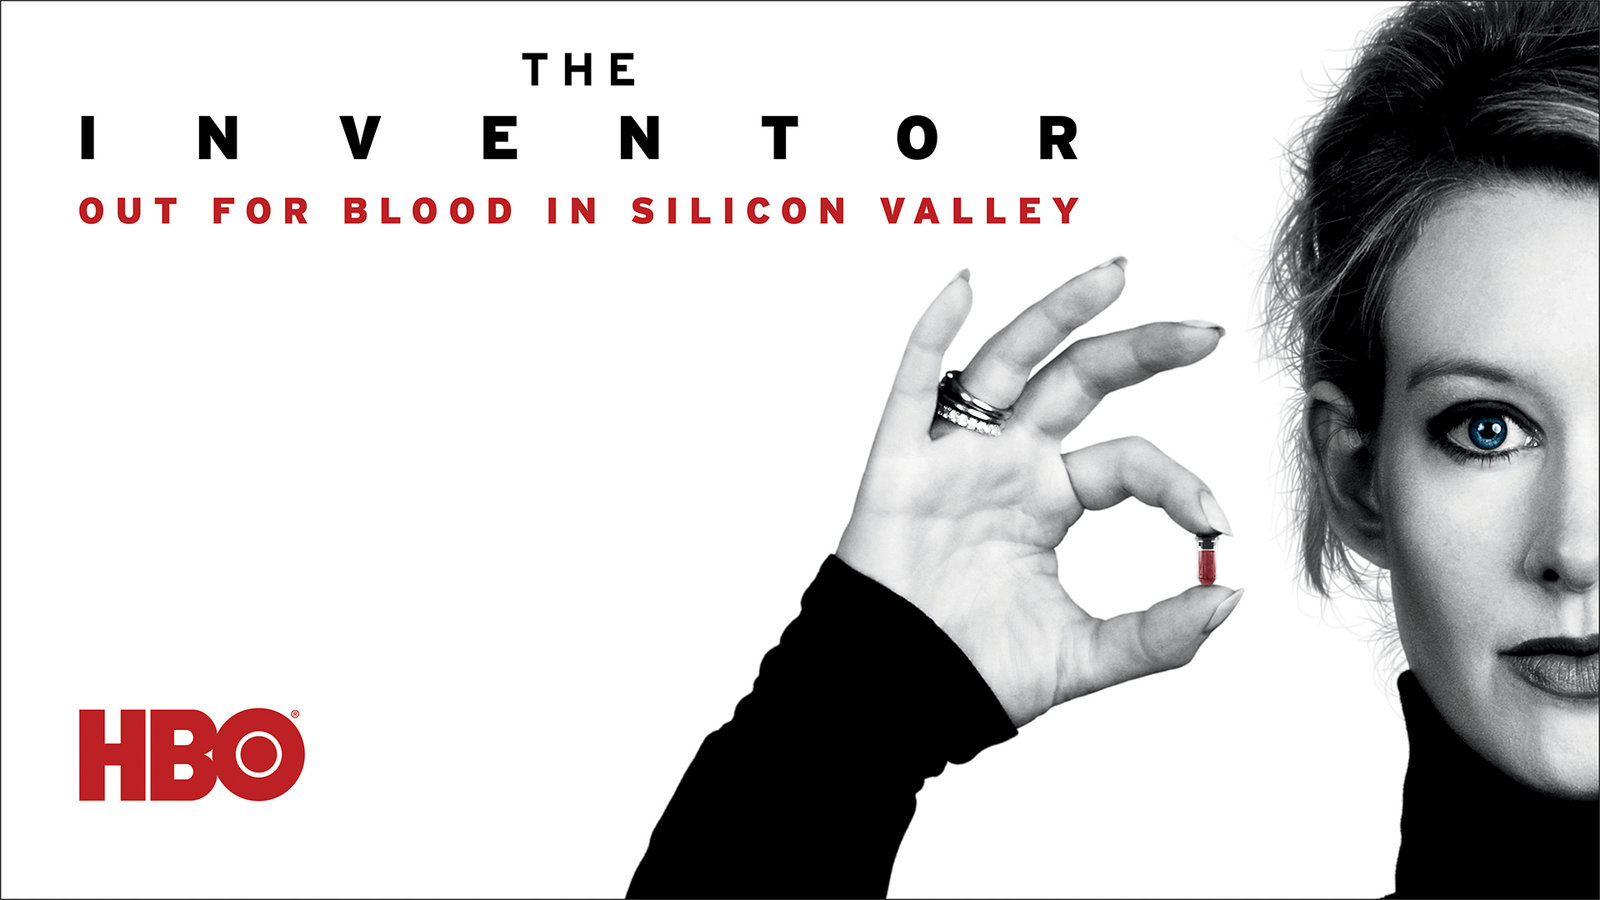 The Inventor - Out for Blood in Silicon Valley